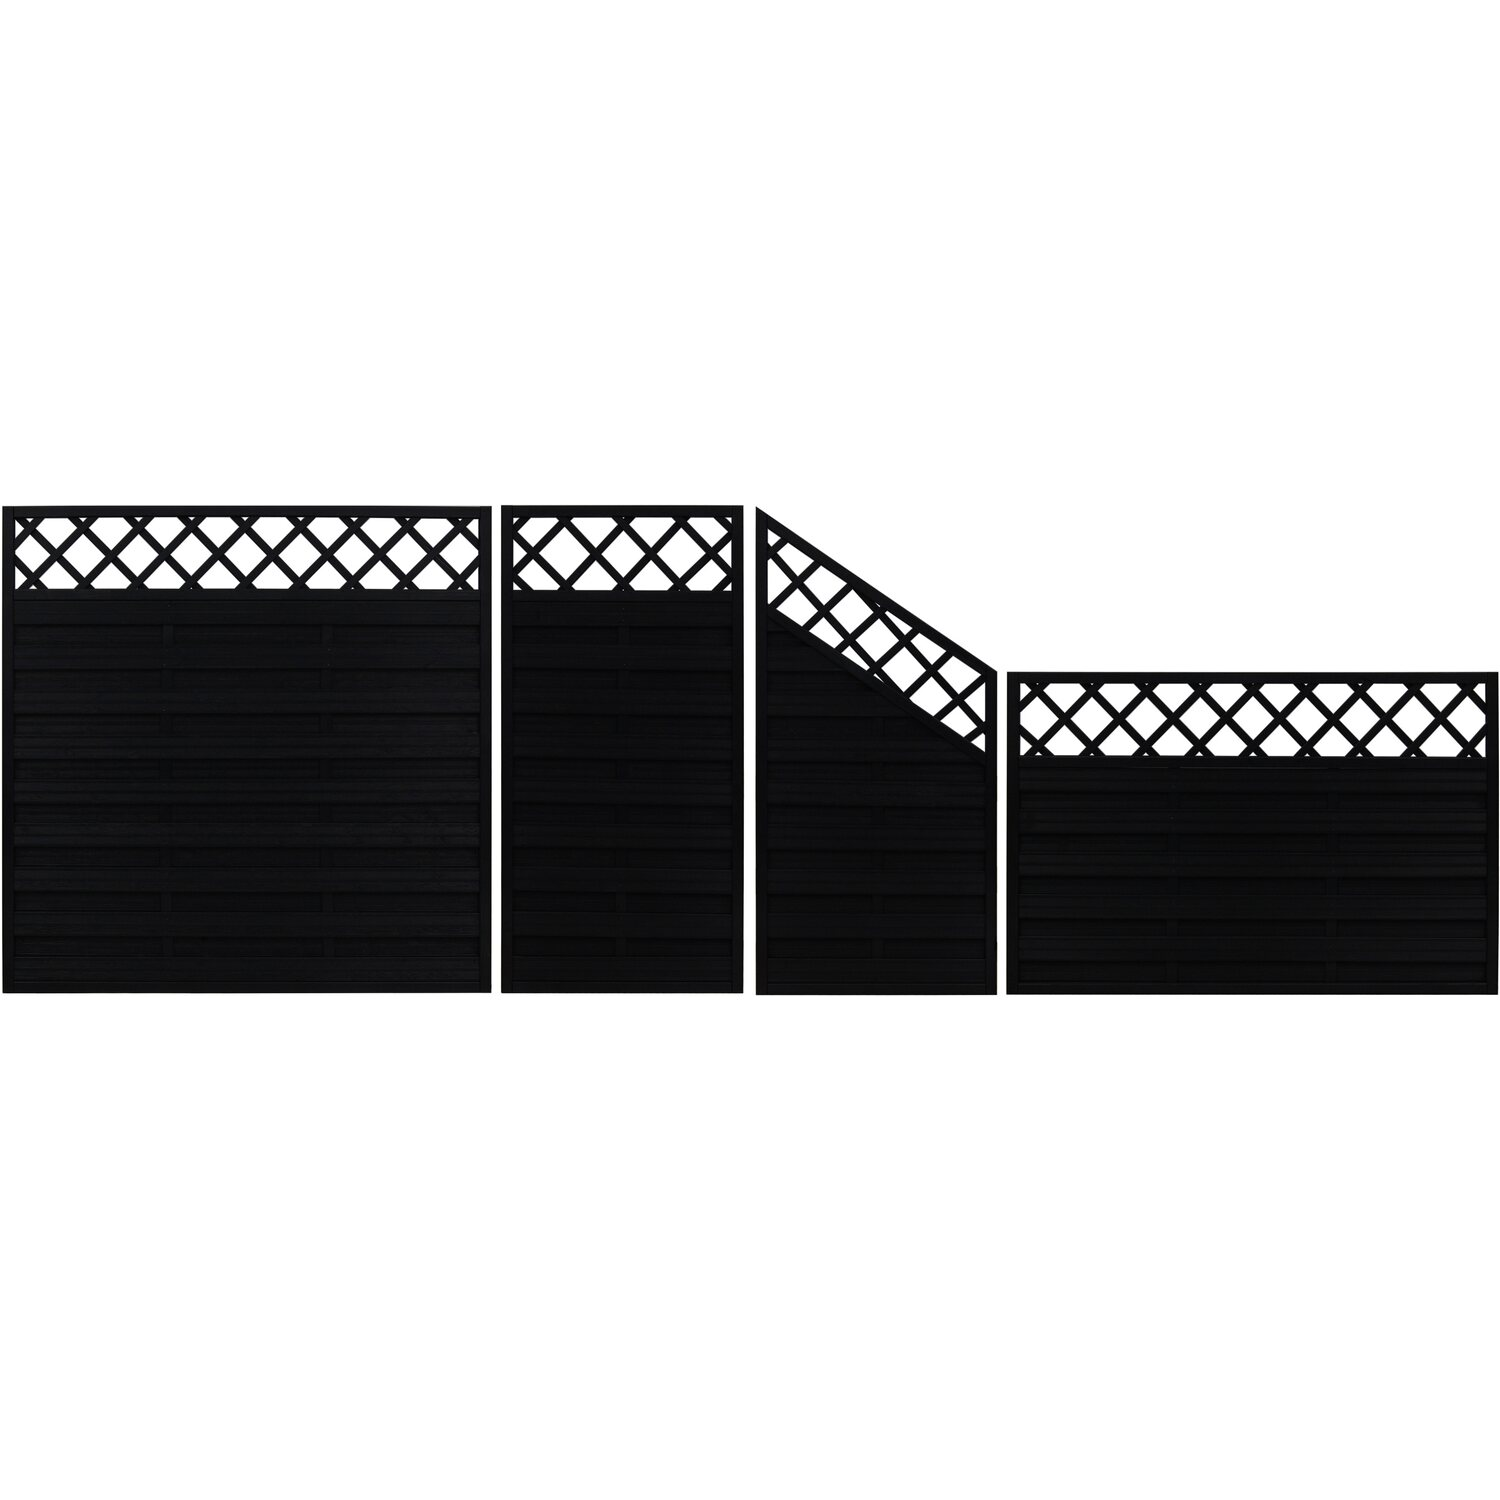 sichtschutzzaun element country anthrazit 120 cm x 180 cm kaufen bei obi. Black Bedroom Furniture Sets. Home Design Ideas